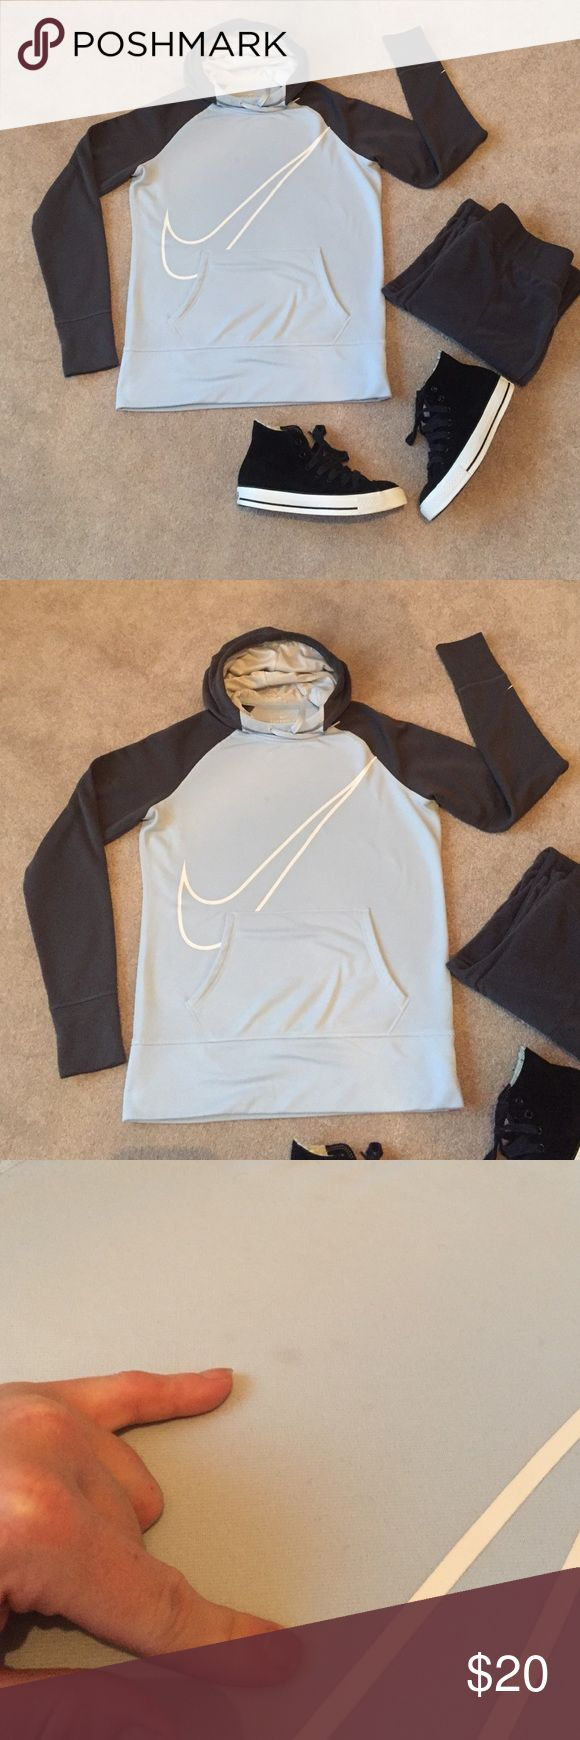 Women's Nike Therma-Fit fleece hoodie size medium Women's Nike Therma-Fit fleece hoodie. Full funnel cowl hood. Size medium with thumb holes. There are 2 little stains on the front that could probably be removed with some spray and wash? This is a no trade closet, lowball offers will be declined Nike Tops Sweatshirts & Hoodies